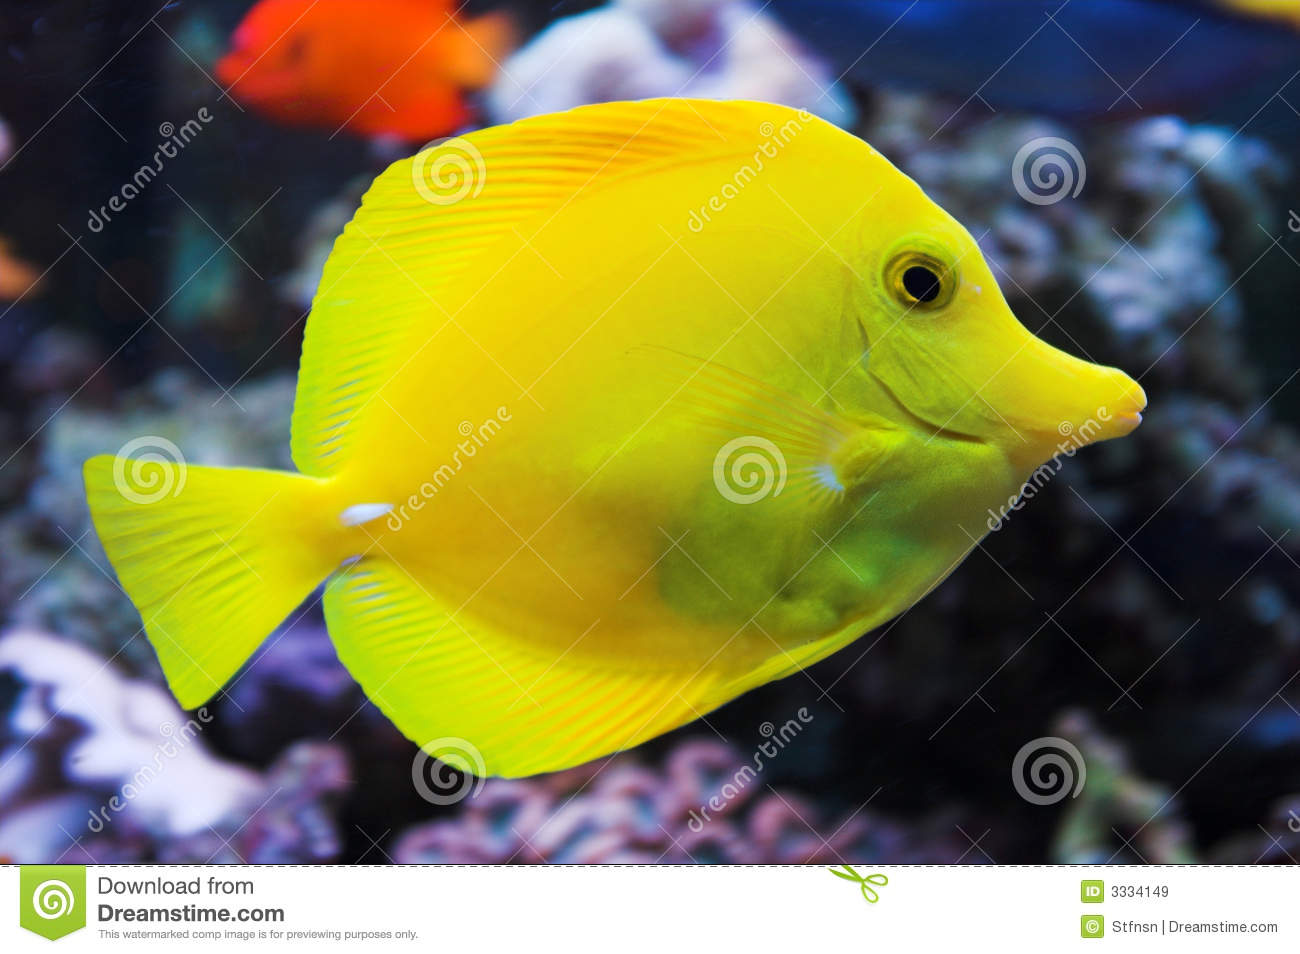 Licenses to sell fish, frogs or marine organisms